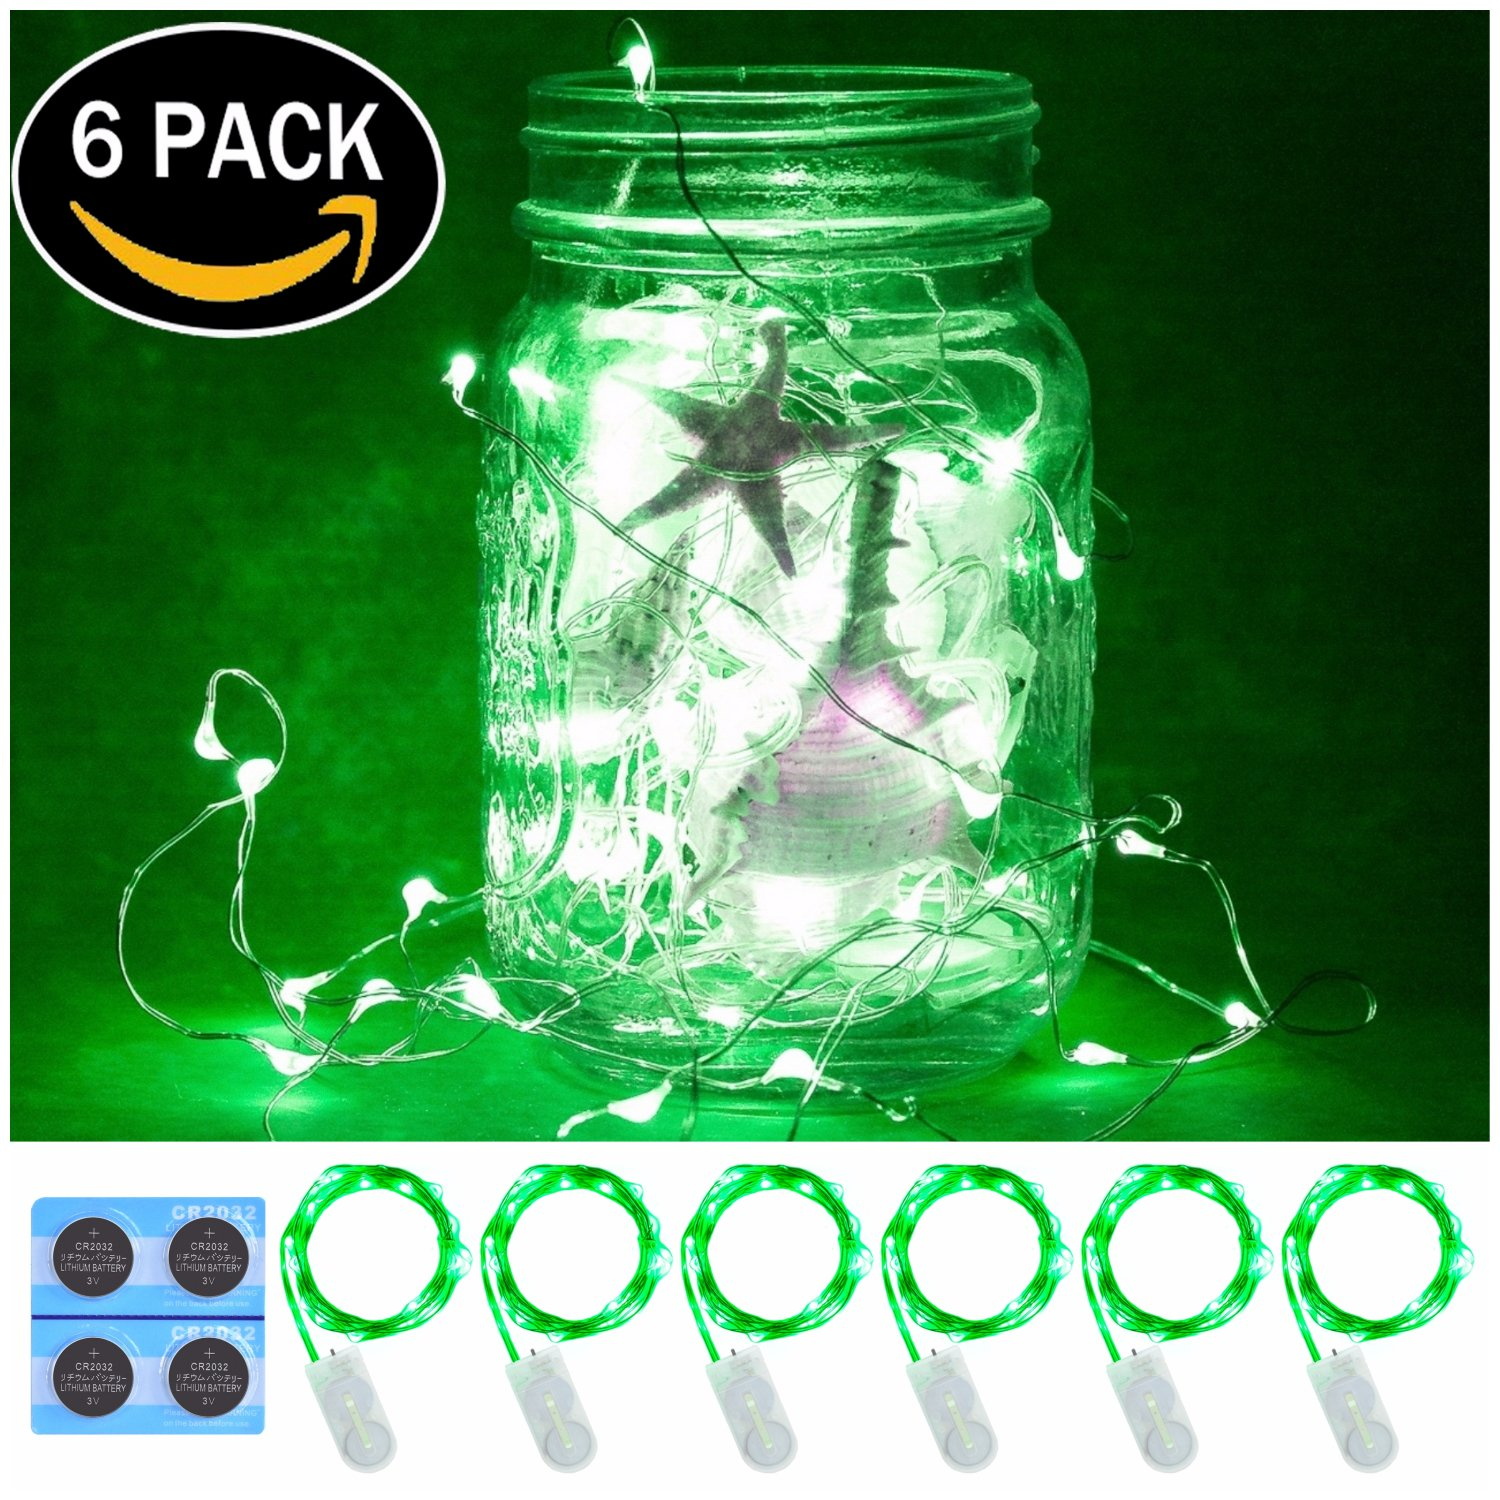 6 Pack,7Feet 20 LED Starry String Lights, Silver Wire,2pcs CR2032 Batteries Included, Firefly Fairy String Light Lights LED Moon Lights for DIY Dinner Party,Table Decoration,Wedding Centerpiece(Green)